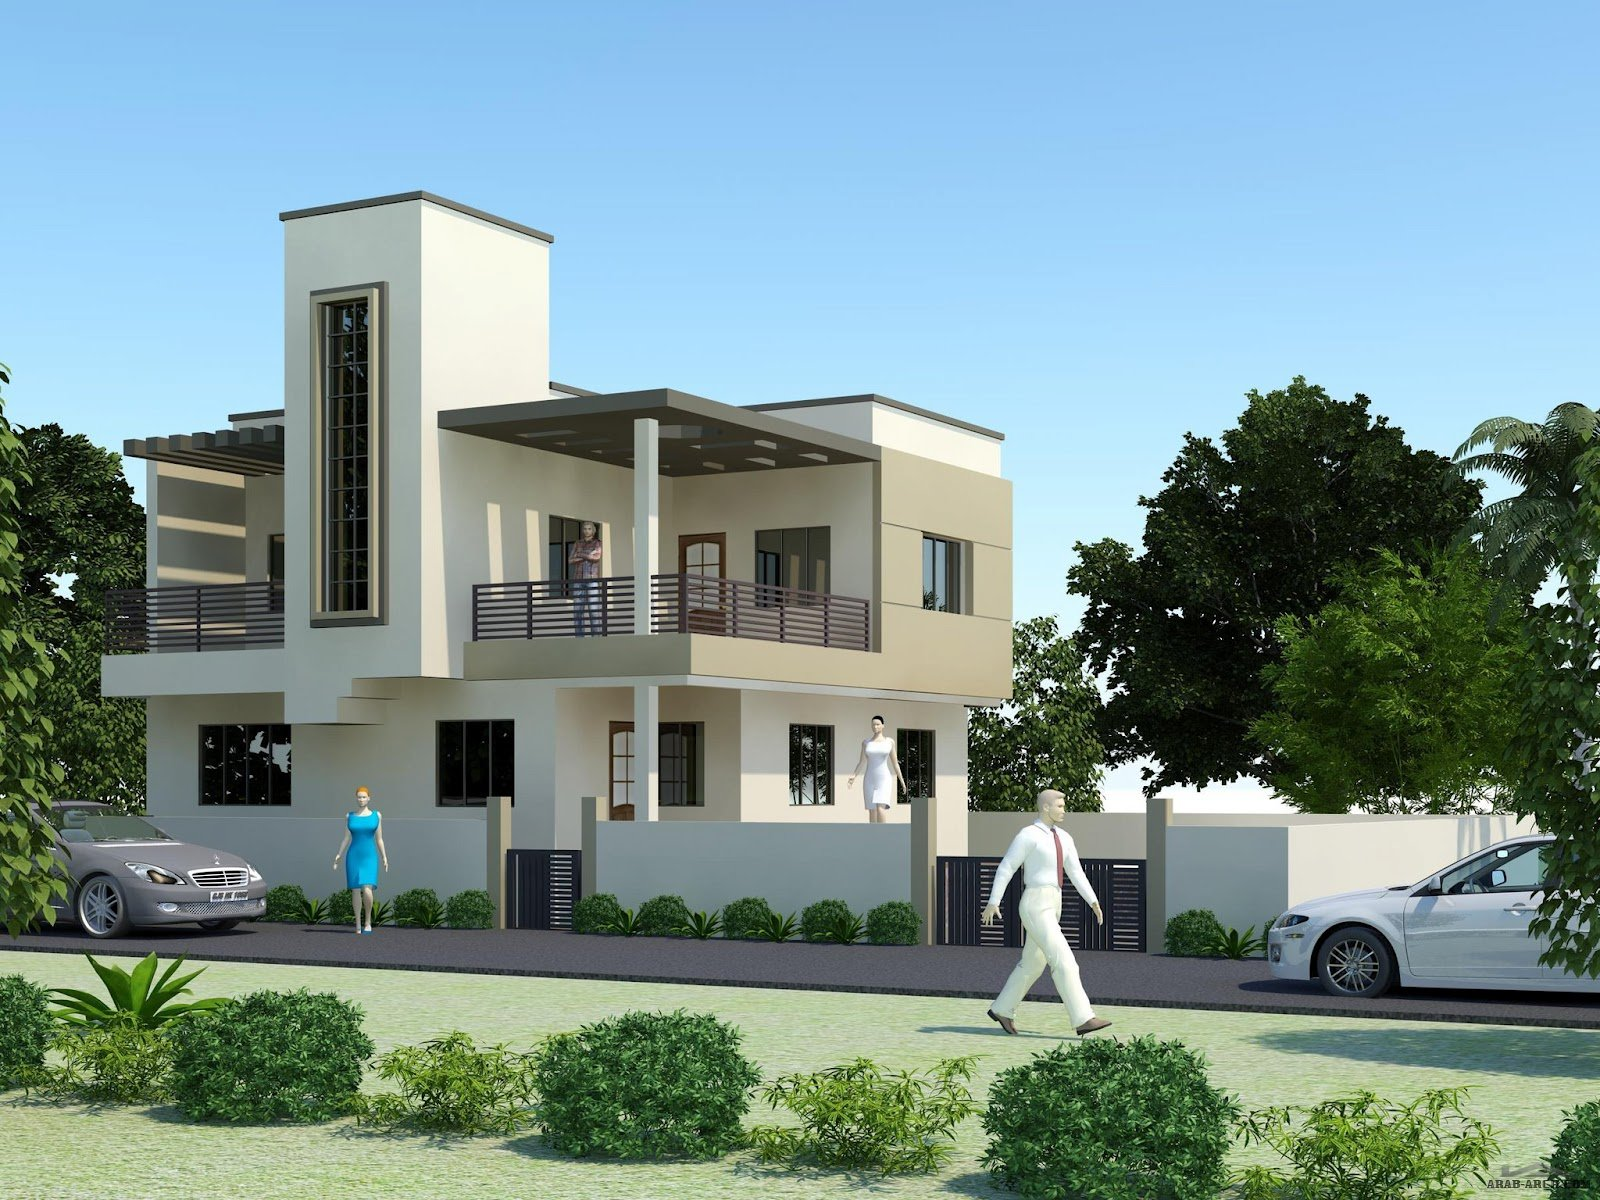 Small House Front Elevation In Raipur : تصاميم فلل مودرن modern villas arab arch